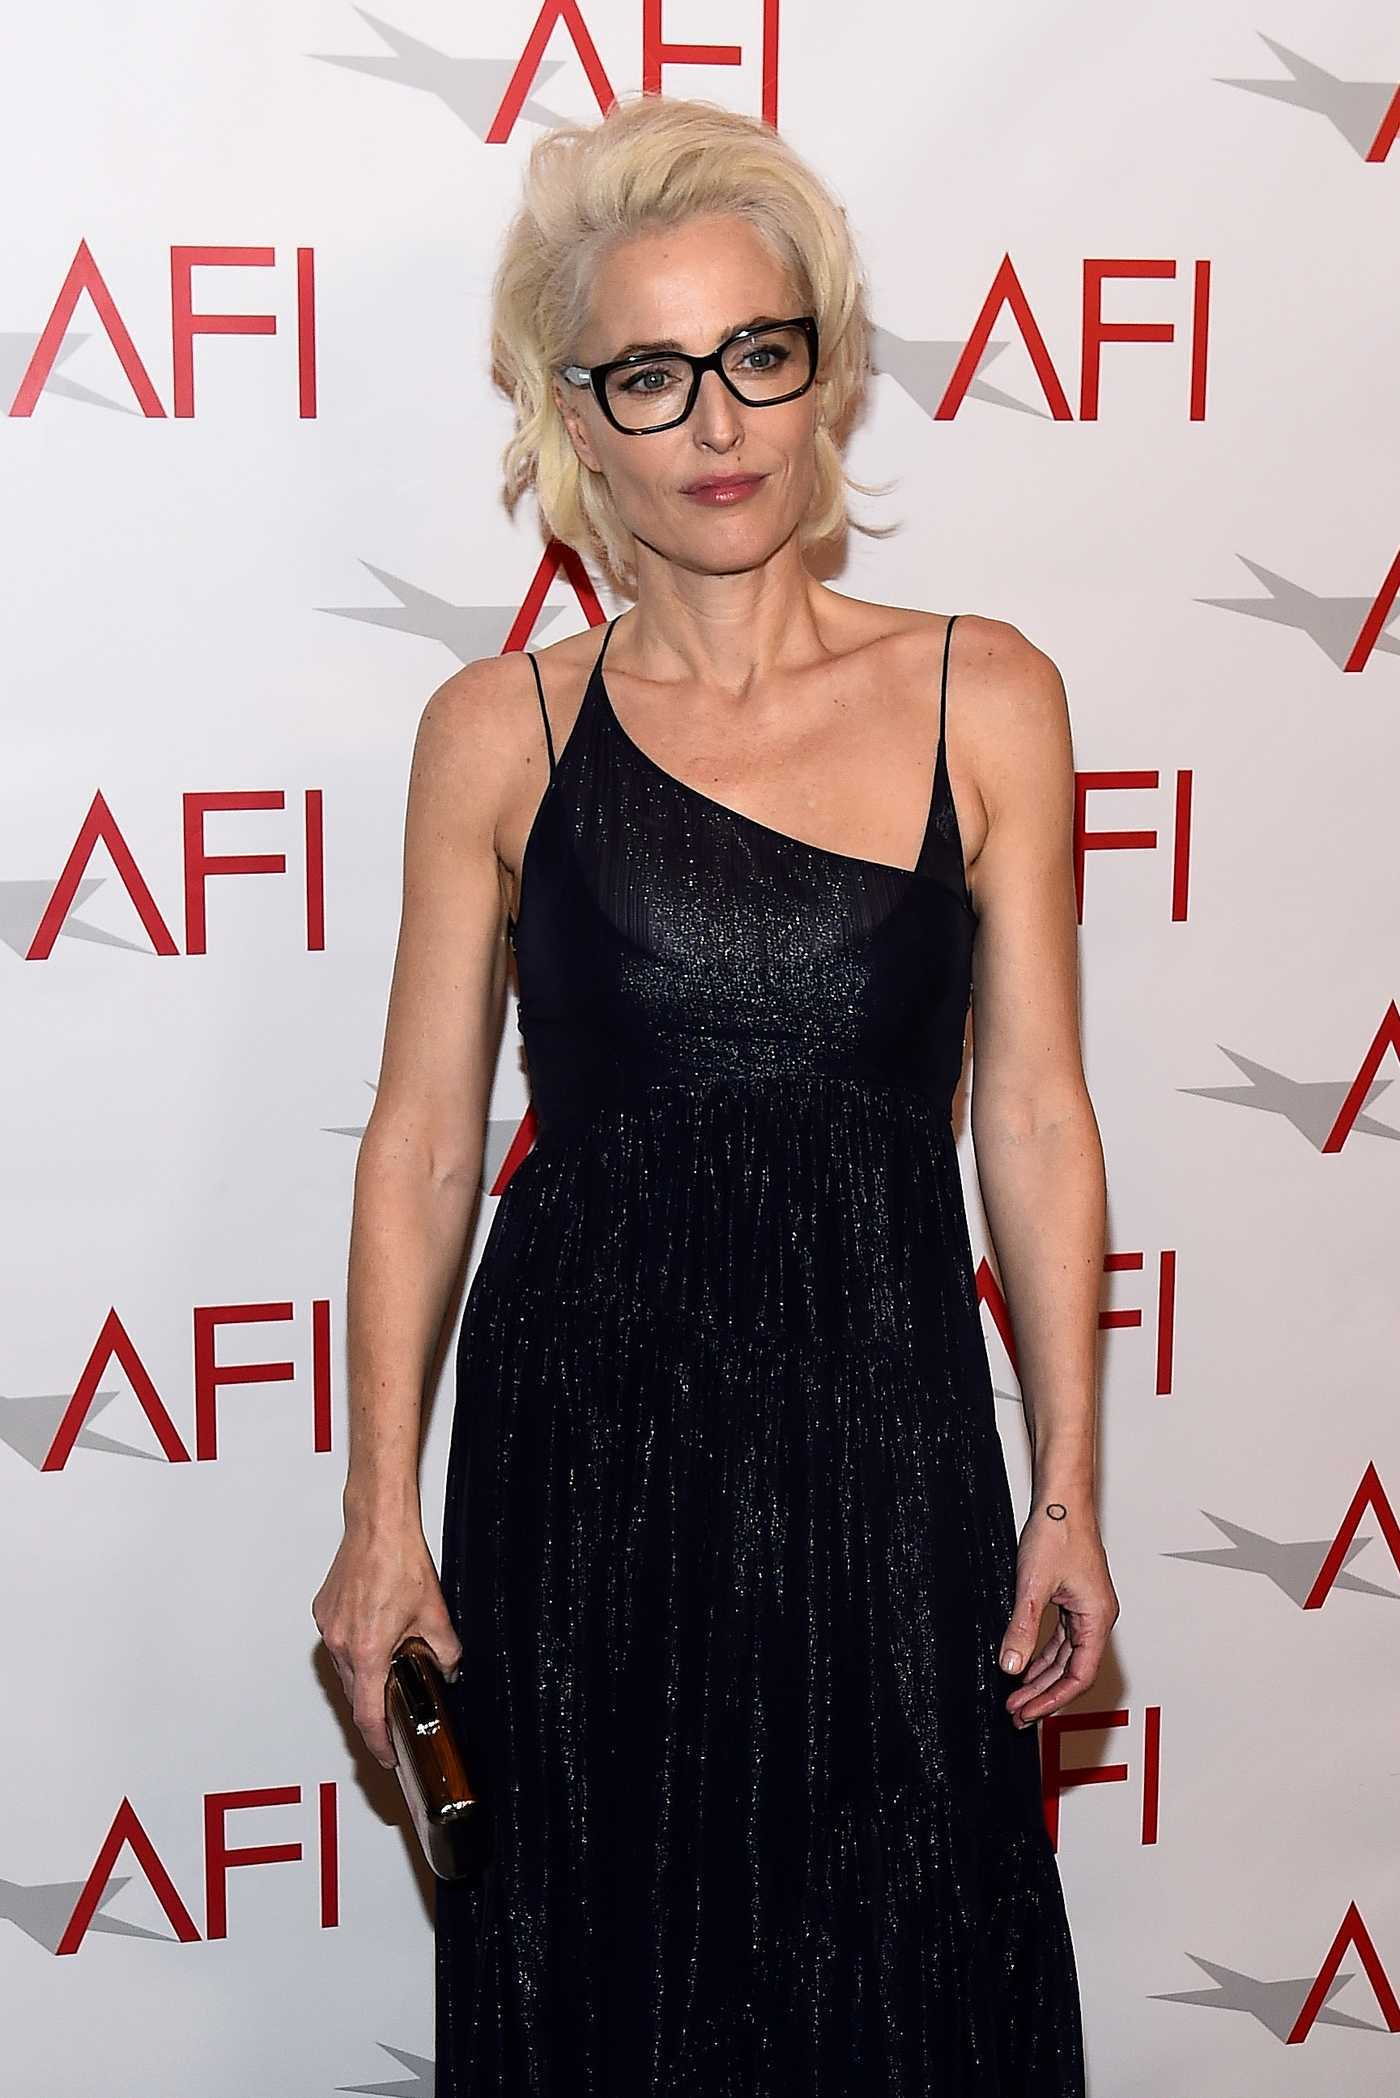 Gillian Anderson at the 18th Annual AFI Awards in Los Angeles 01/05/2018